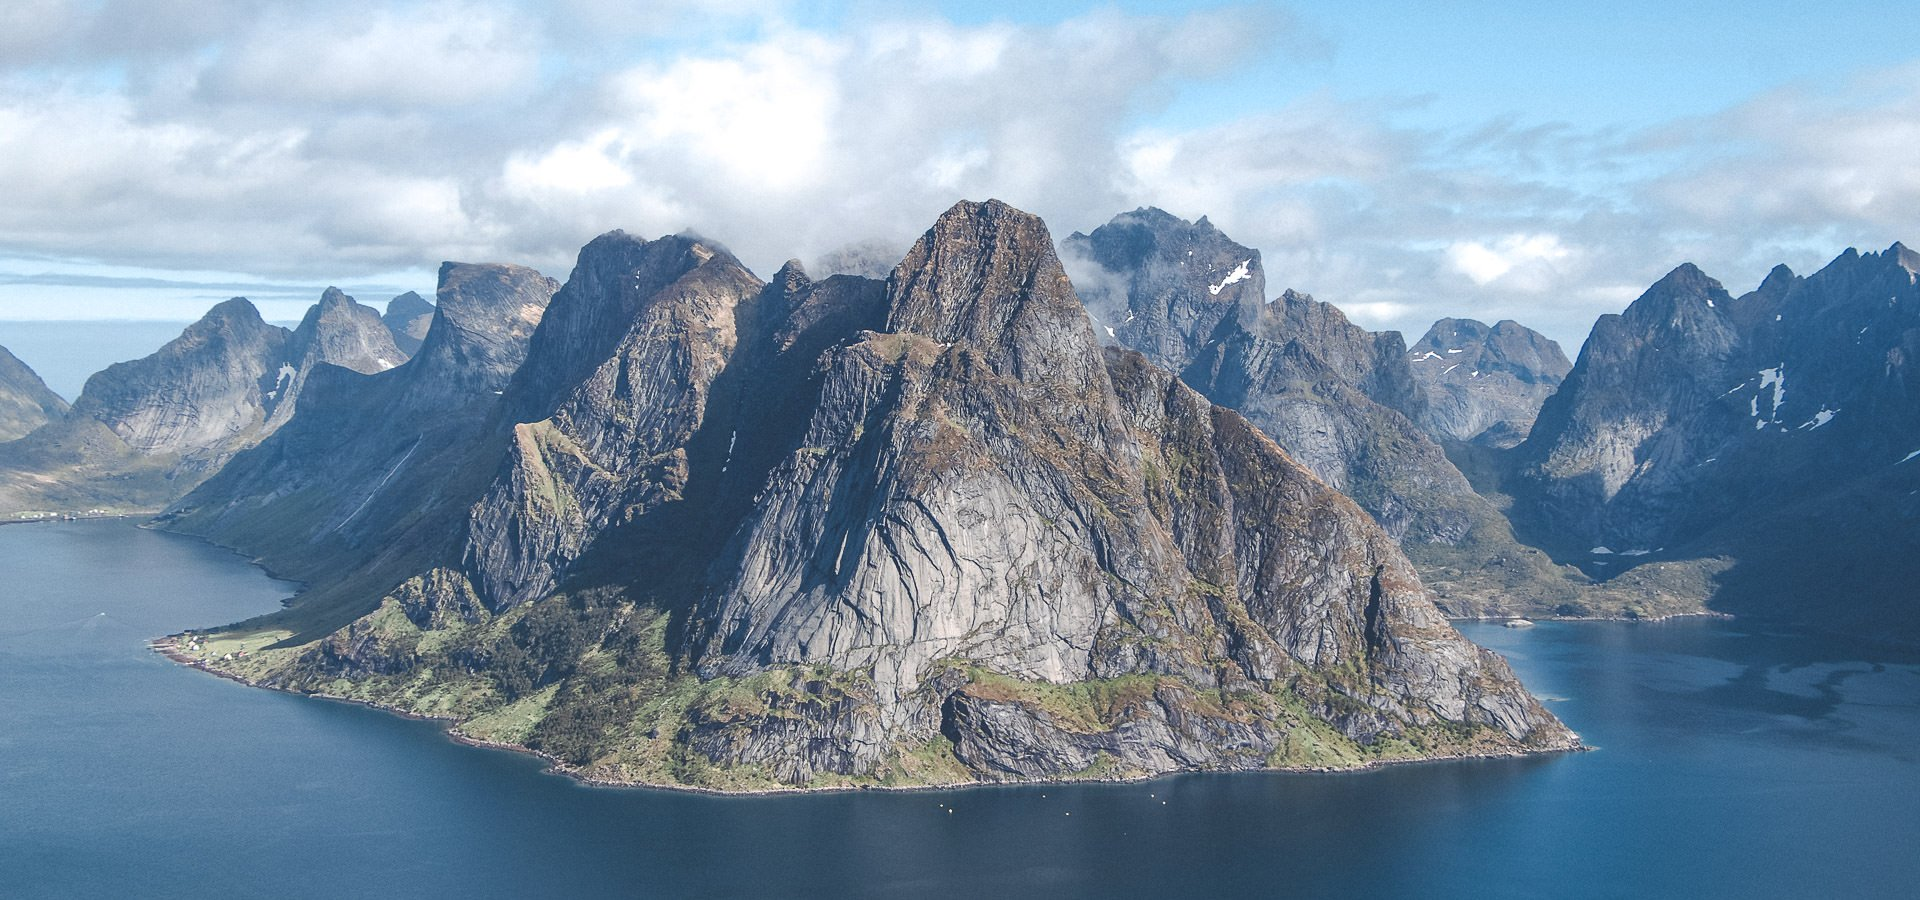 Hiking Reinebringen in Lofoten Norway - A story of overcoming mud and FOMO_FI.2_6000 x 4000-2